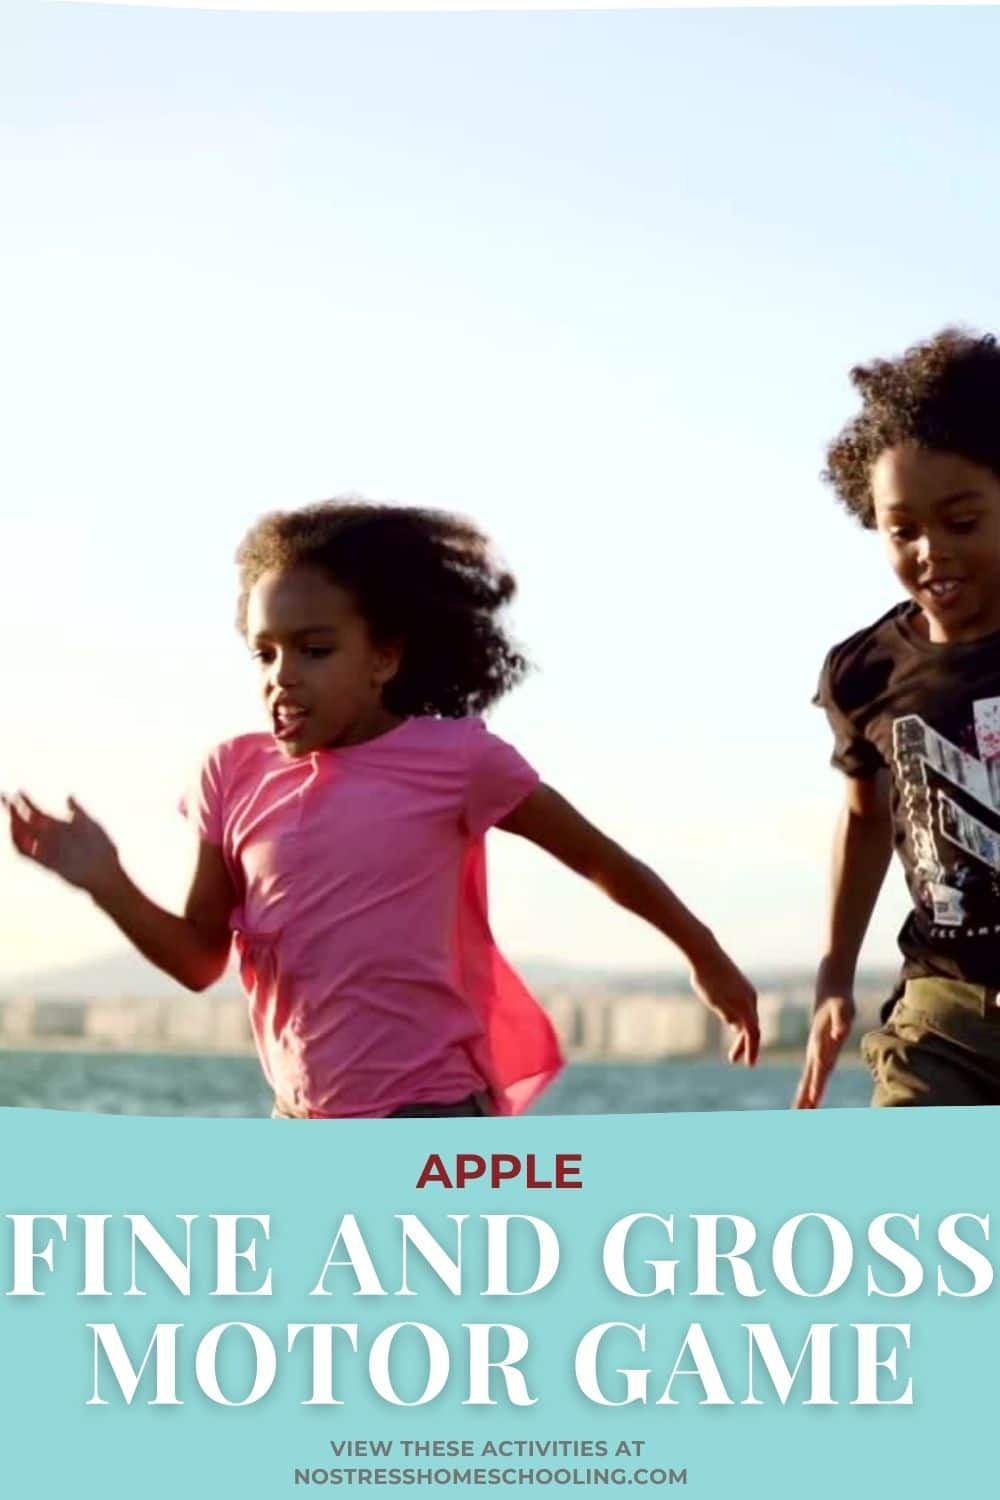 apple fine and gross motor game image